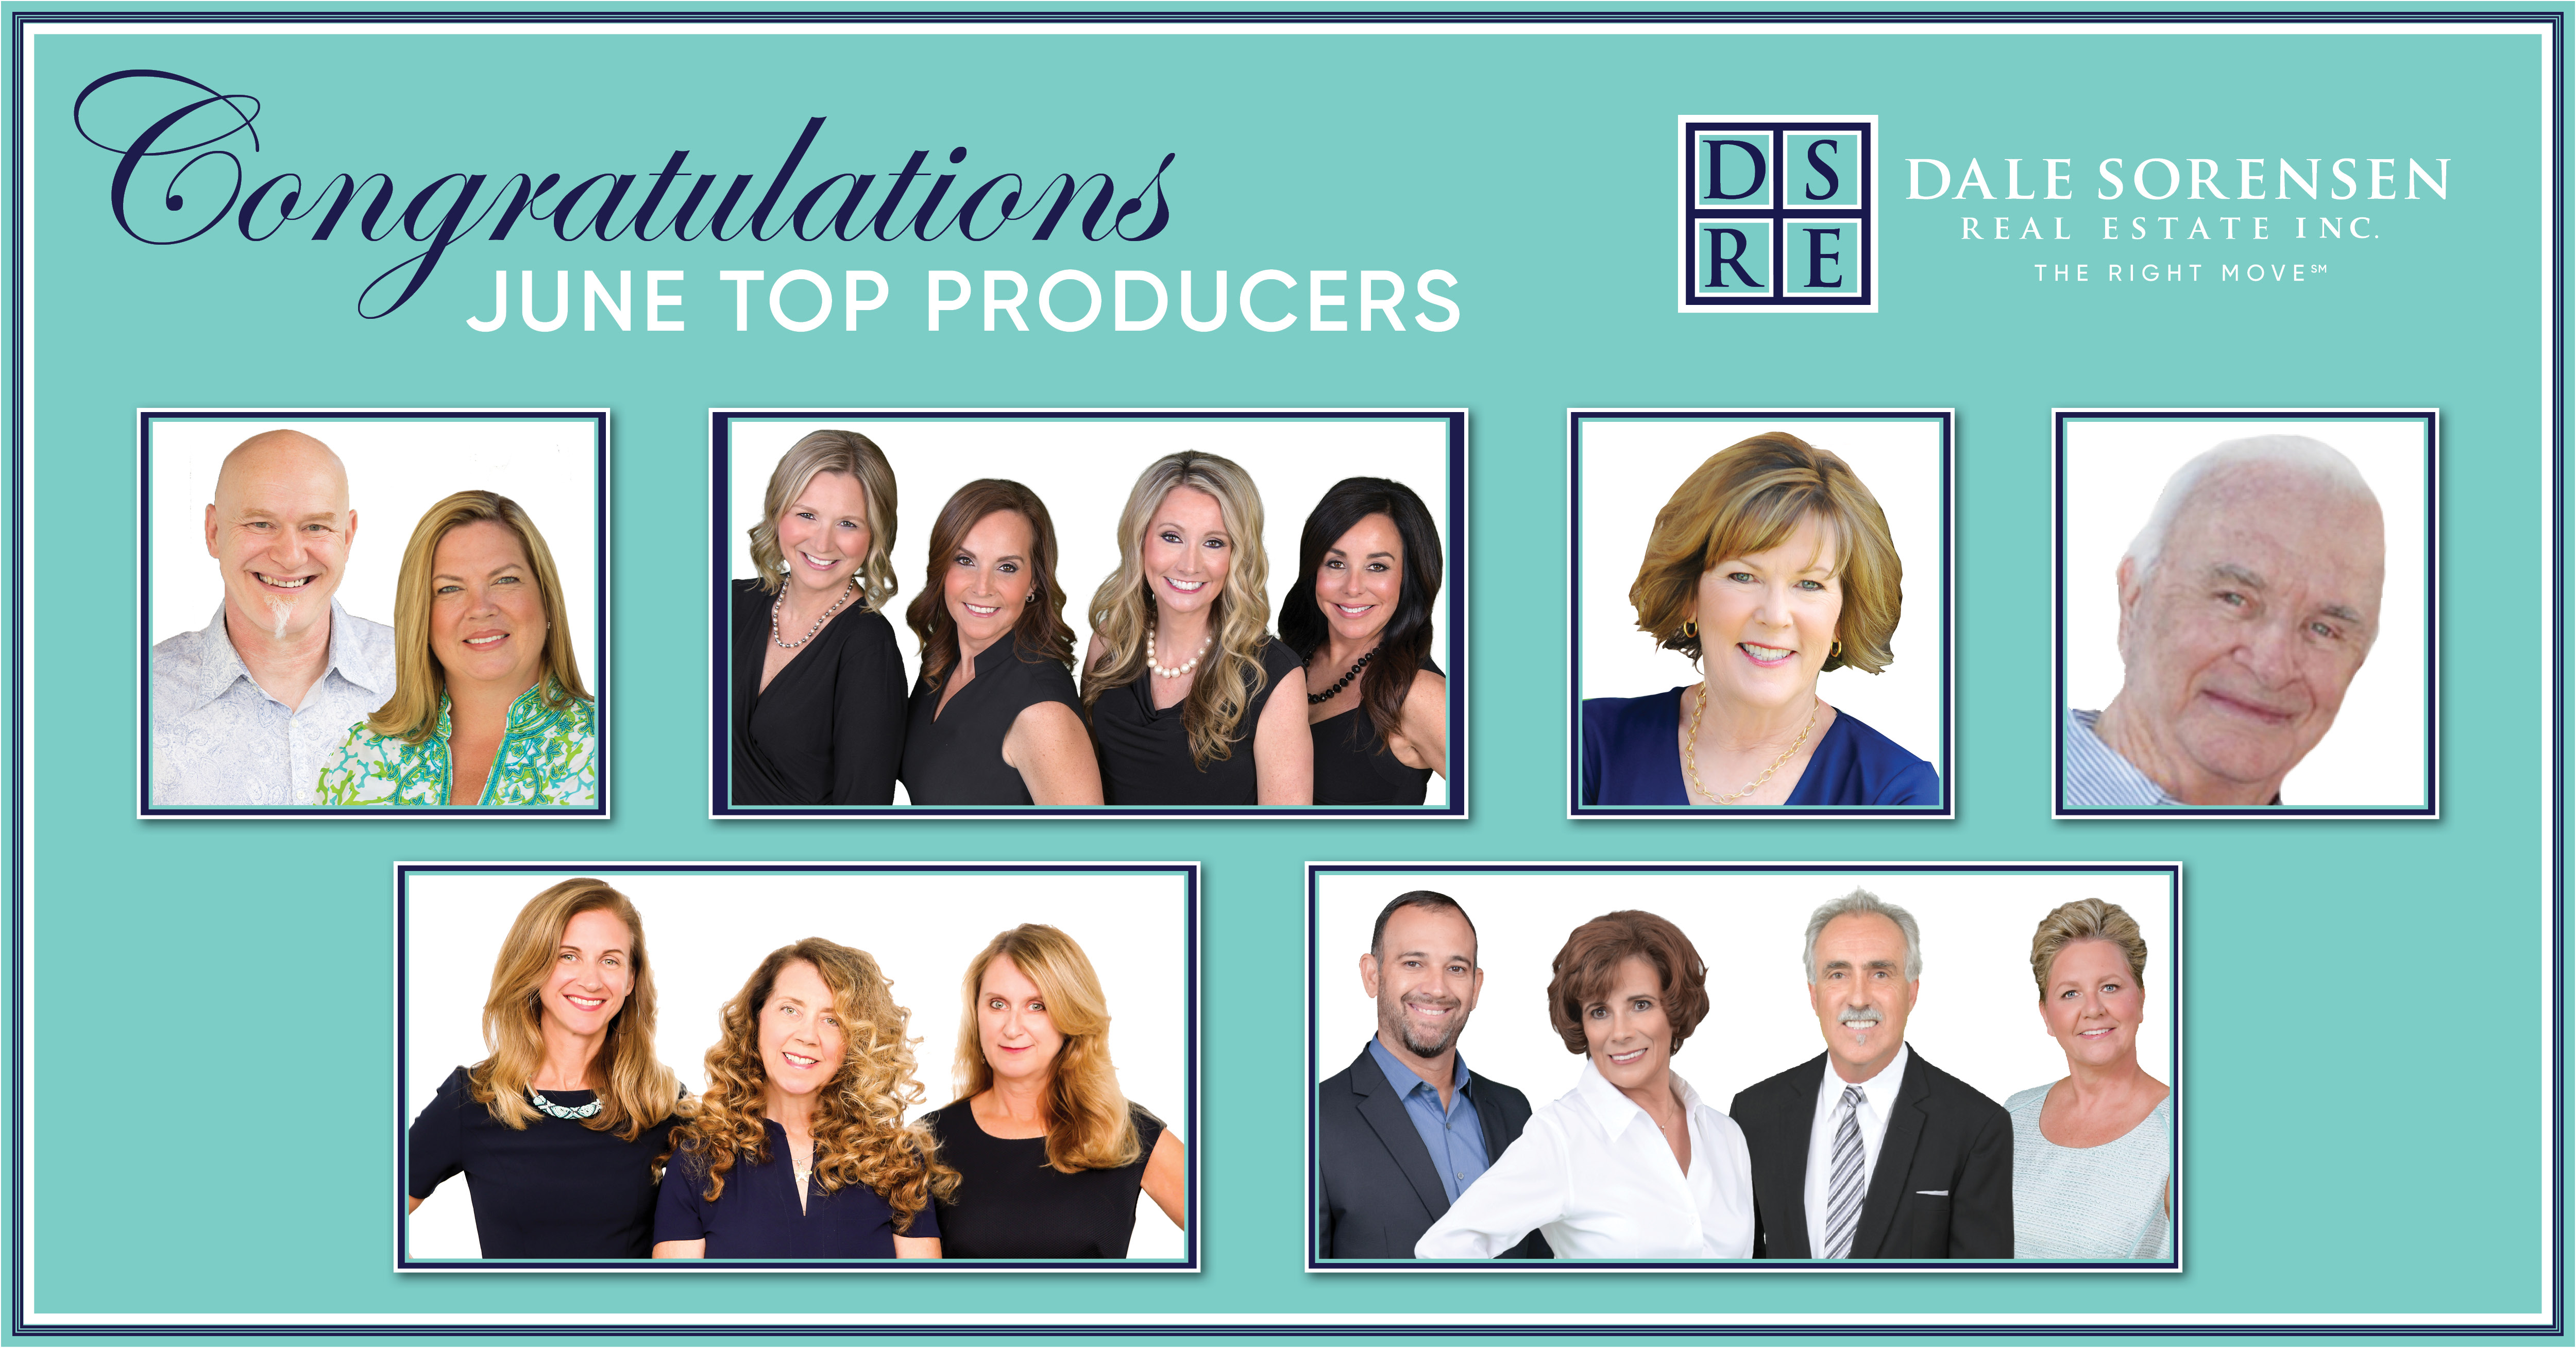 Congratulations June Top Producers DSRE Dale Sorensen Real Estate Inc. THE RIGHT MOVE